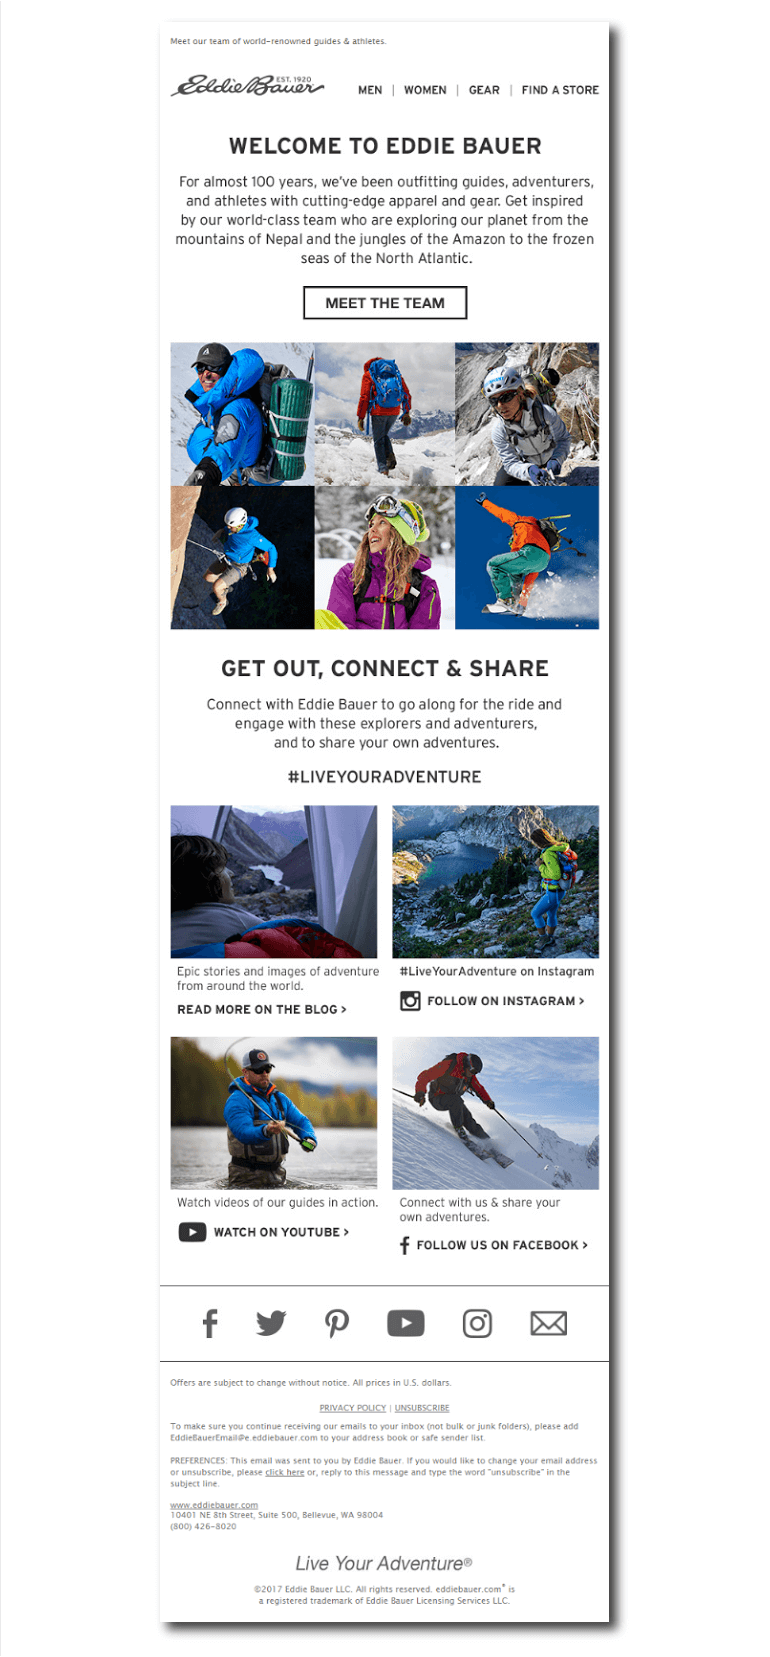 Example of a welcome email from Eddie Bauer